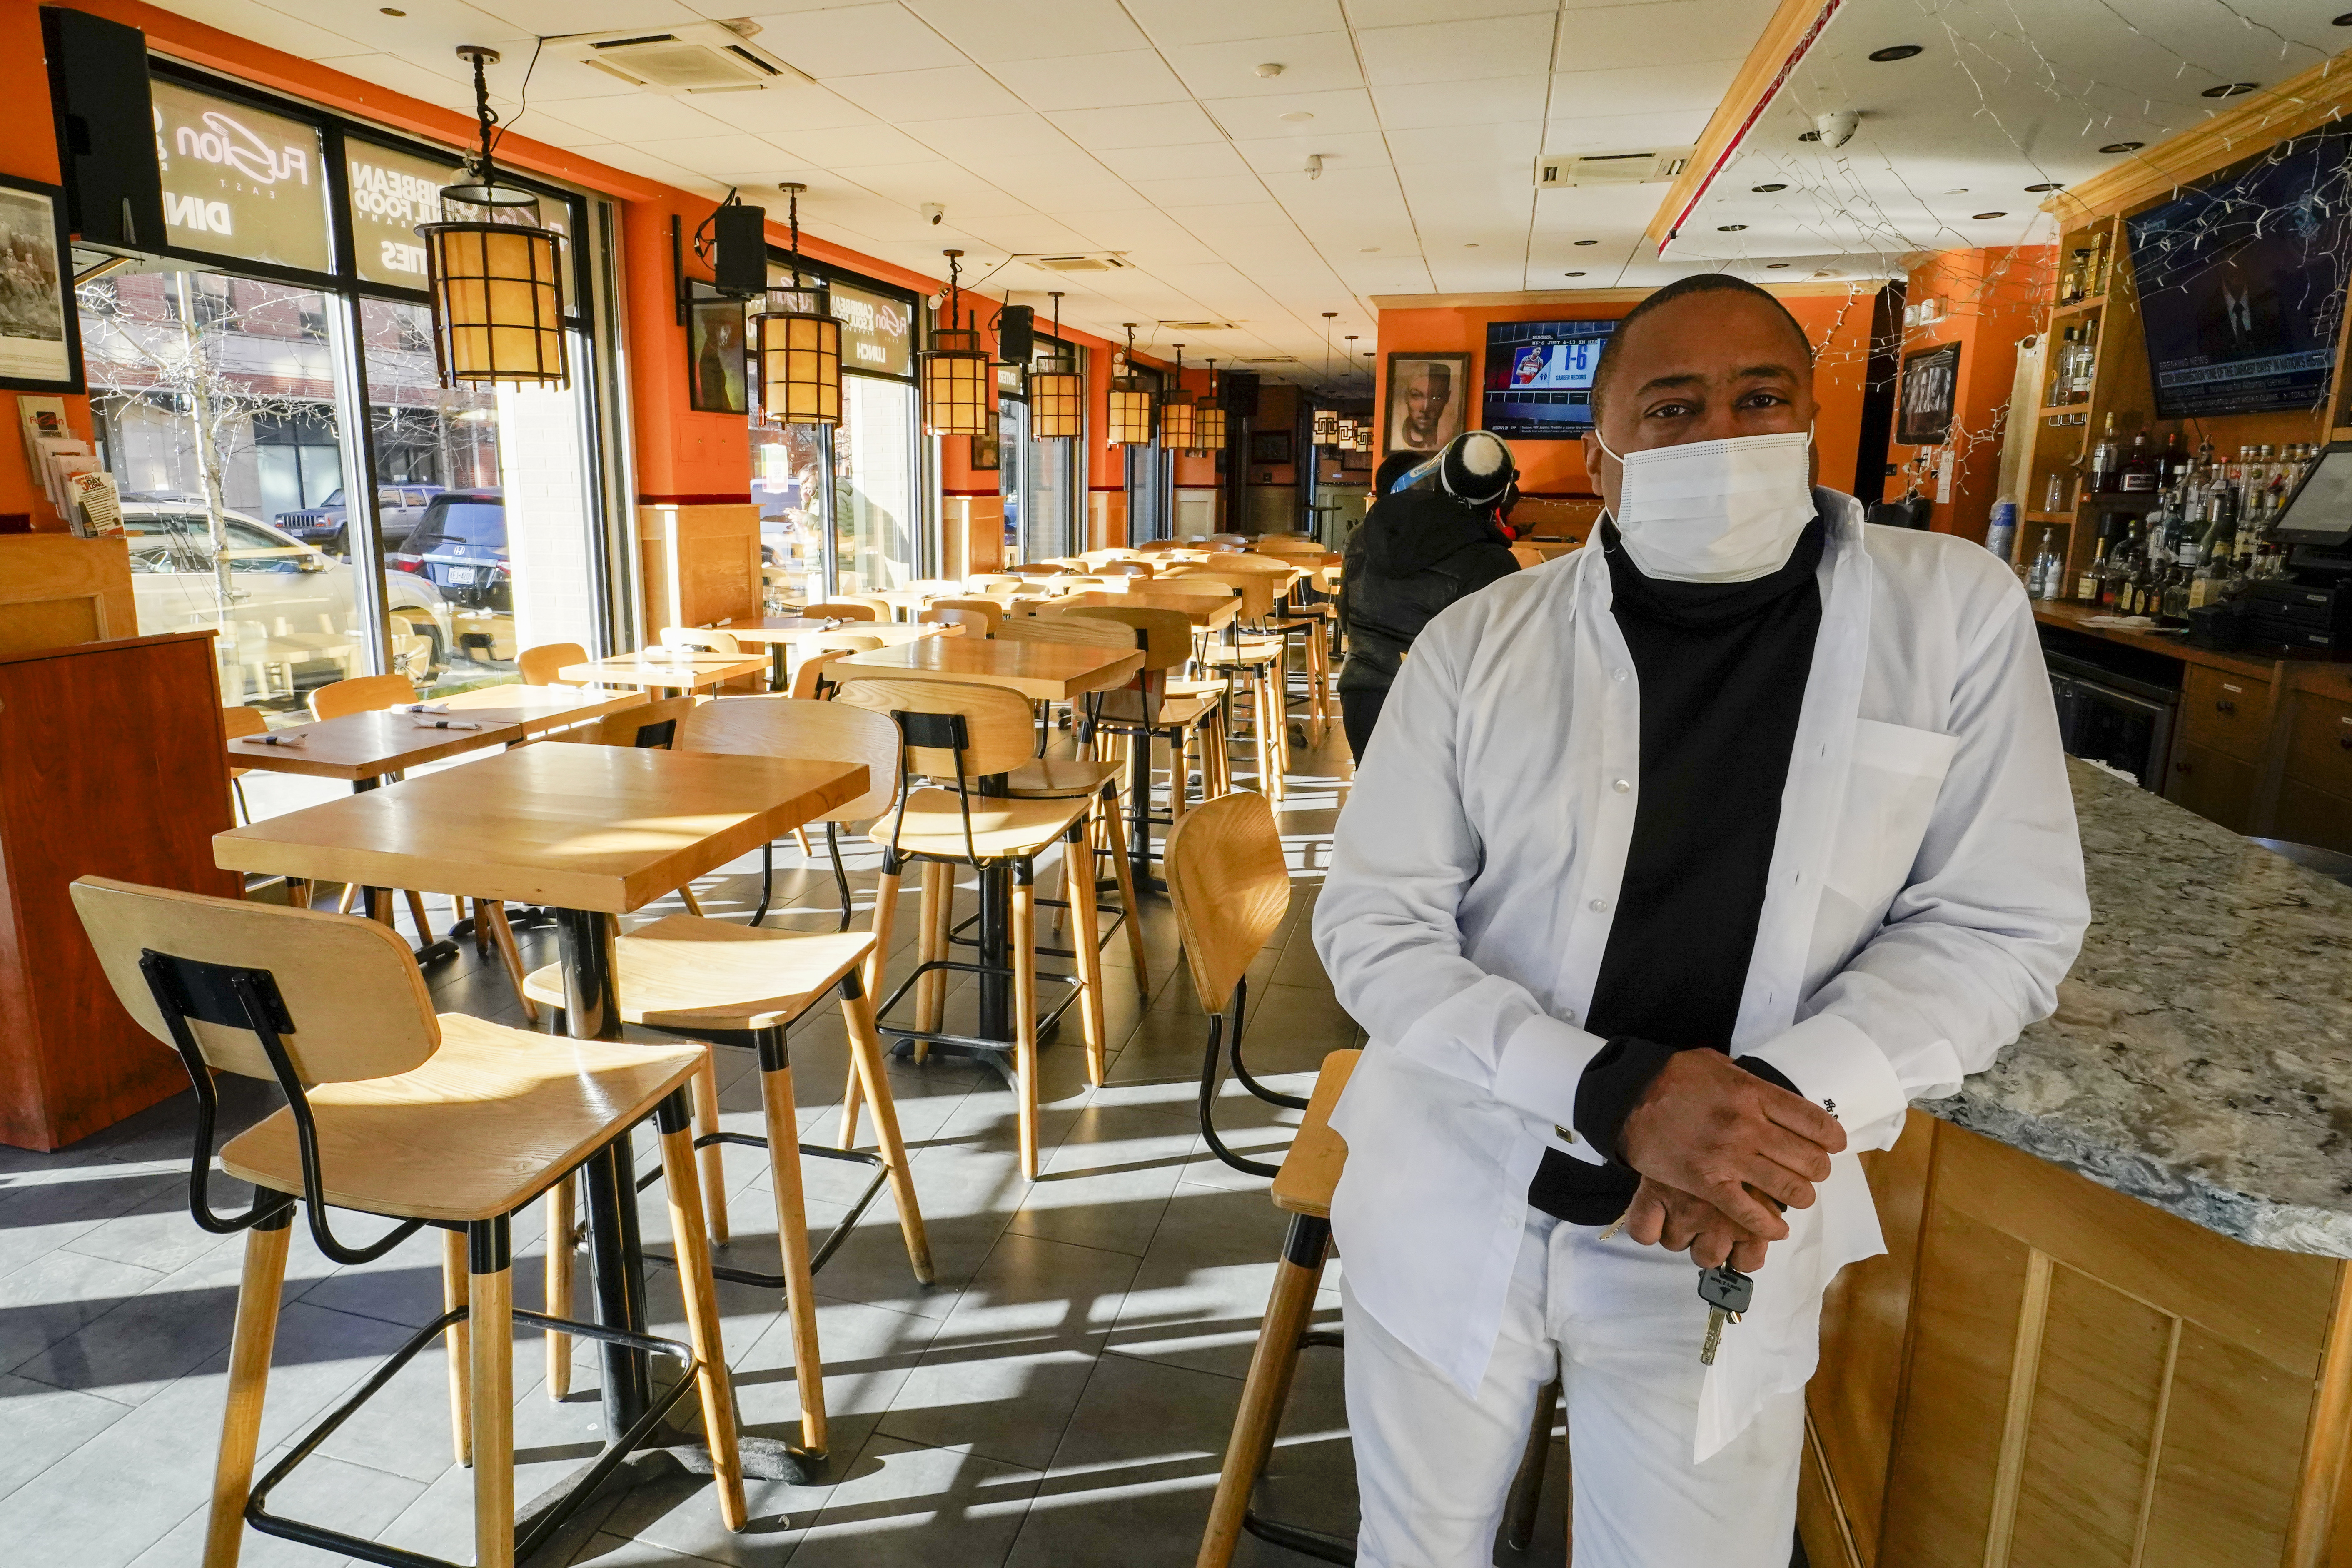 Andrew Walcott, owner of Fusion East Caribbean & Soul Food restaurant, poses for a photo at the restaurant in East New York neighborhood of the Brooklyn borough of New York, Thursday, Jan. 7, 2021.